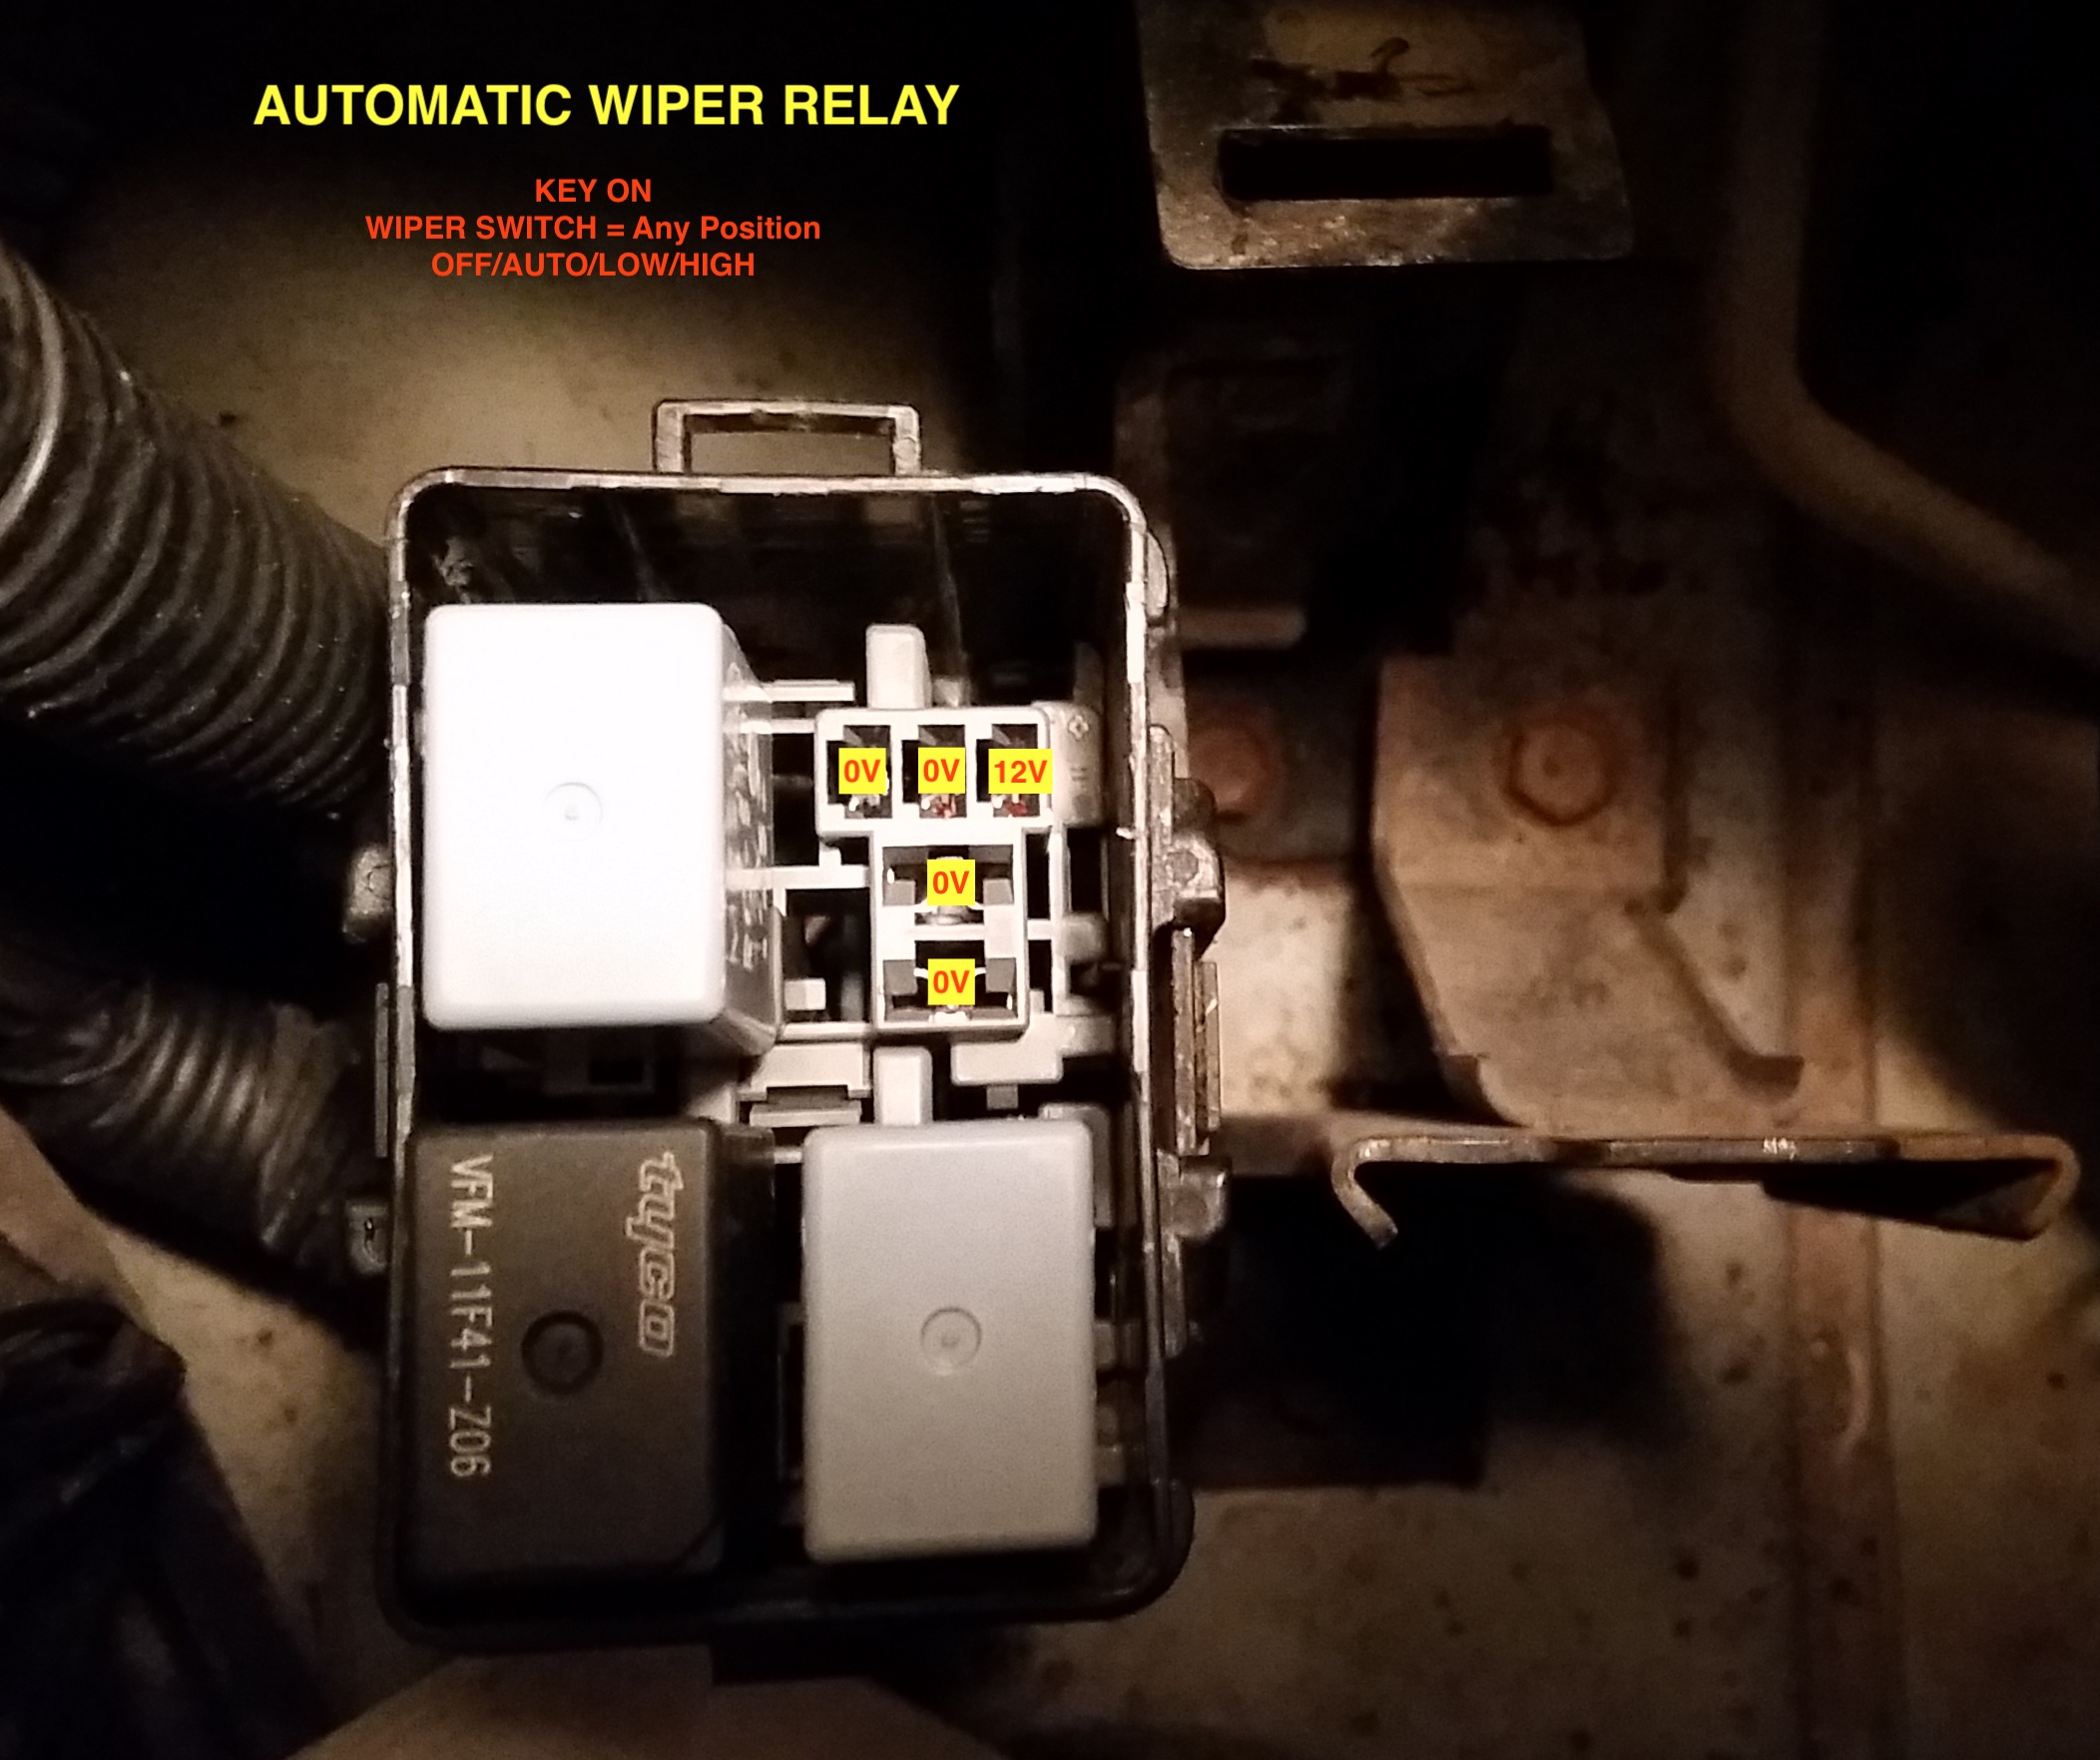 2004 Auto Wipers Only Work On High And Wont Park Acura Mdx Automatic Rain Sensing Windshield Wiper Control Circuit Diagram Click Image For Larger Version Name Relay Views 65 Size